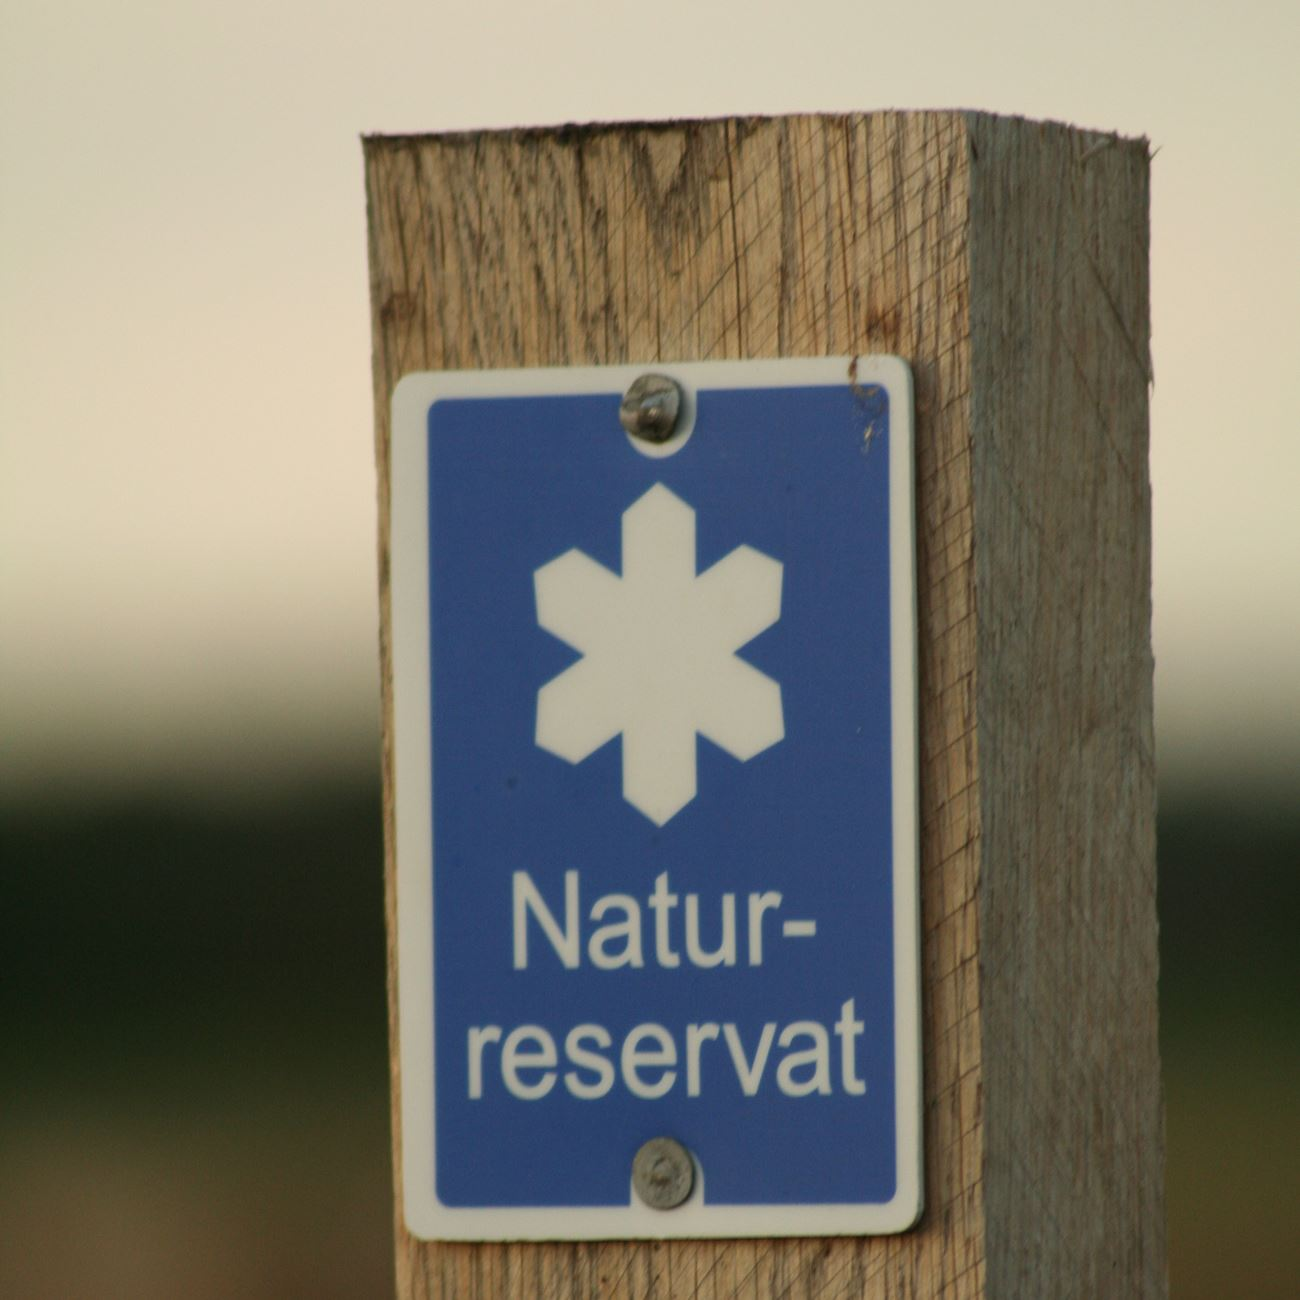 Birdwatching and hiking in Draven nature reserve